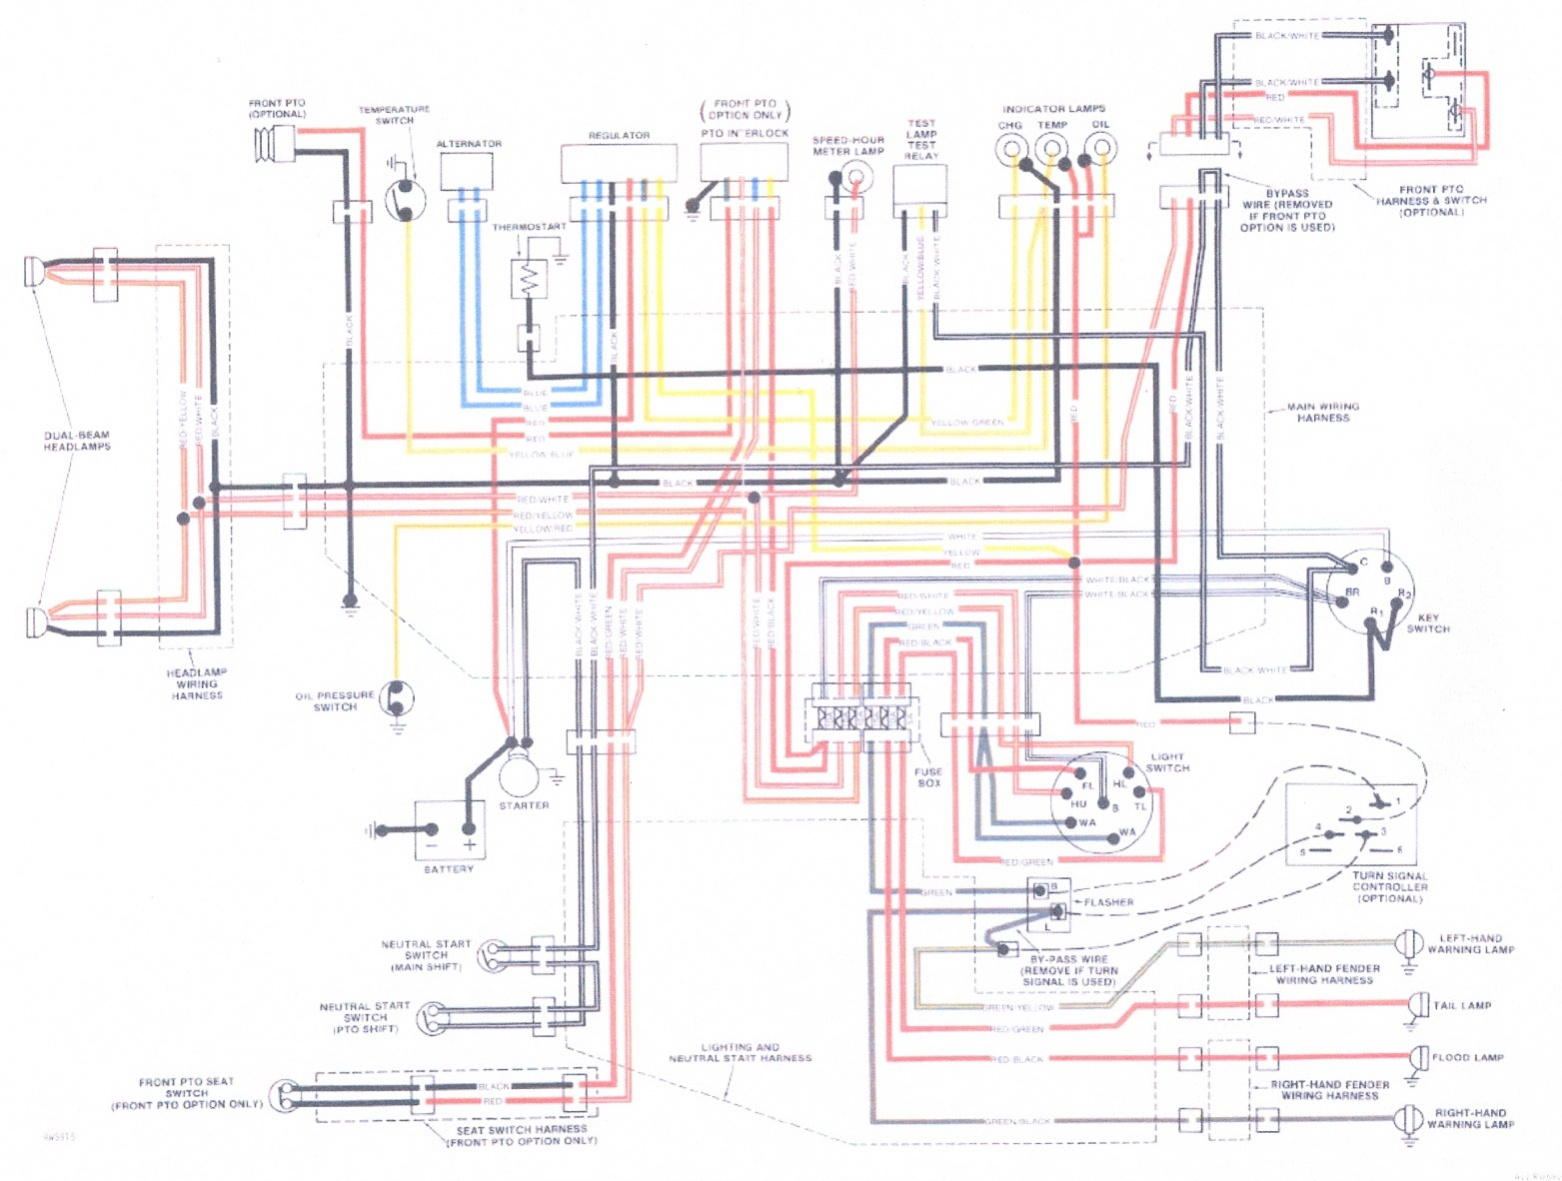 John Deere Lx277 Wiring Diagram Library Gx335 Click Image For Larger Version Name Scan0001 Zpsa9ae2029 Views 6614 Size 4145